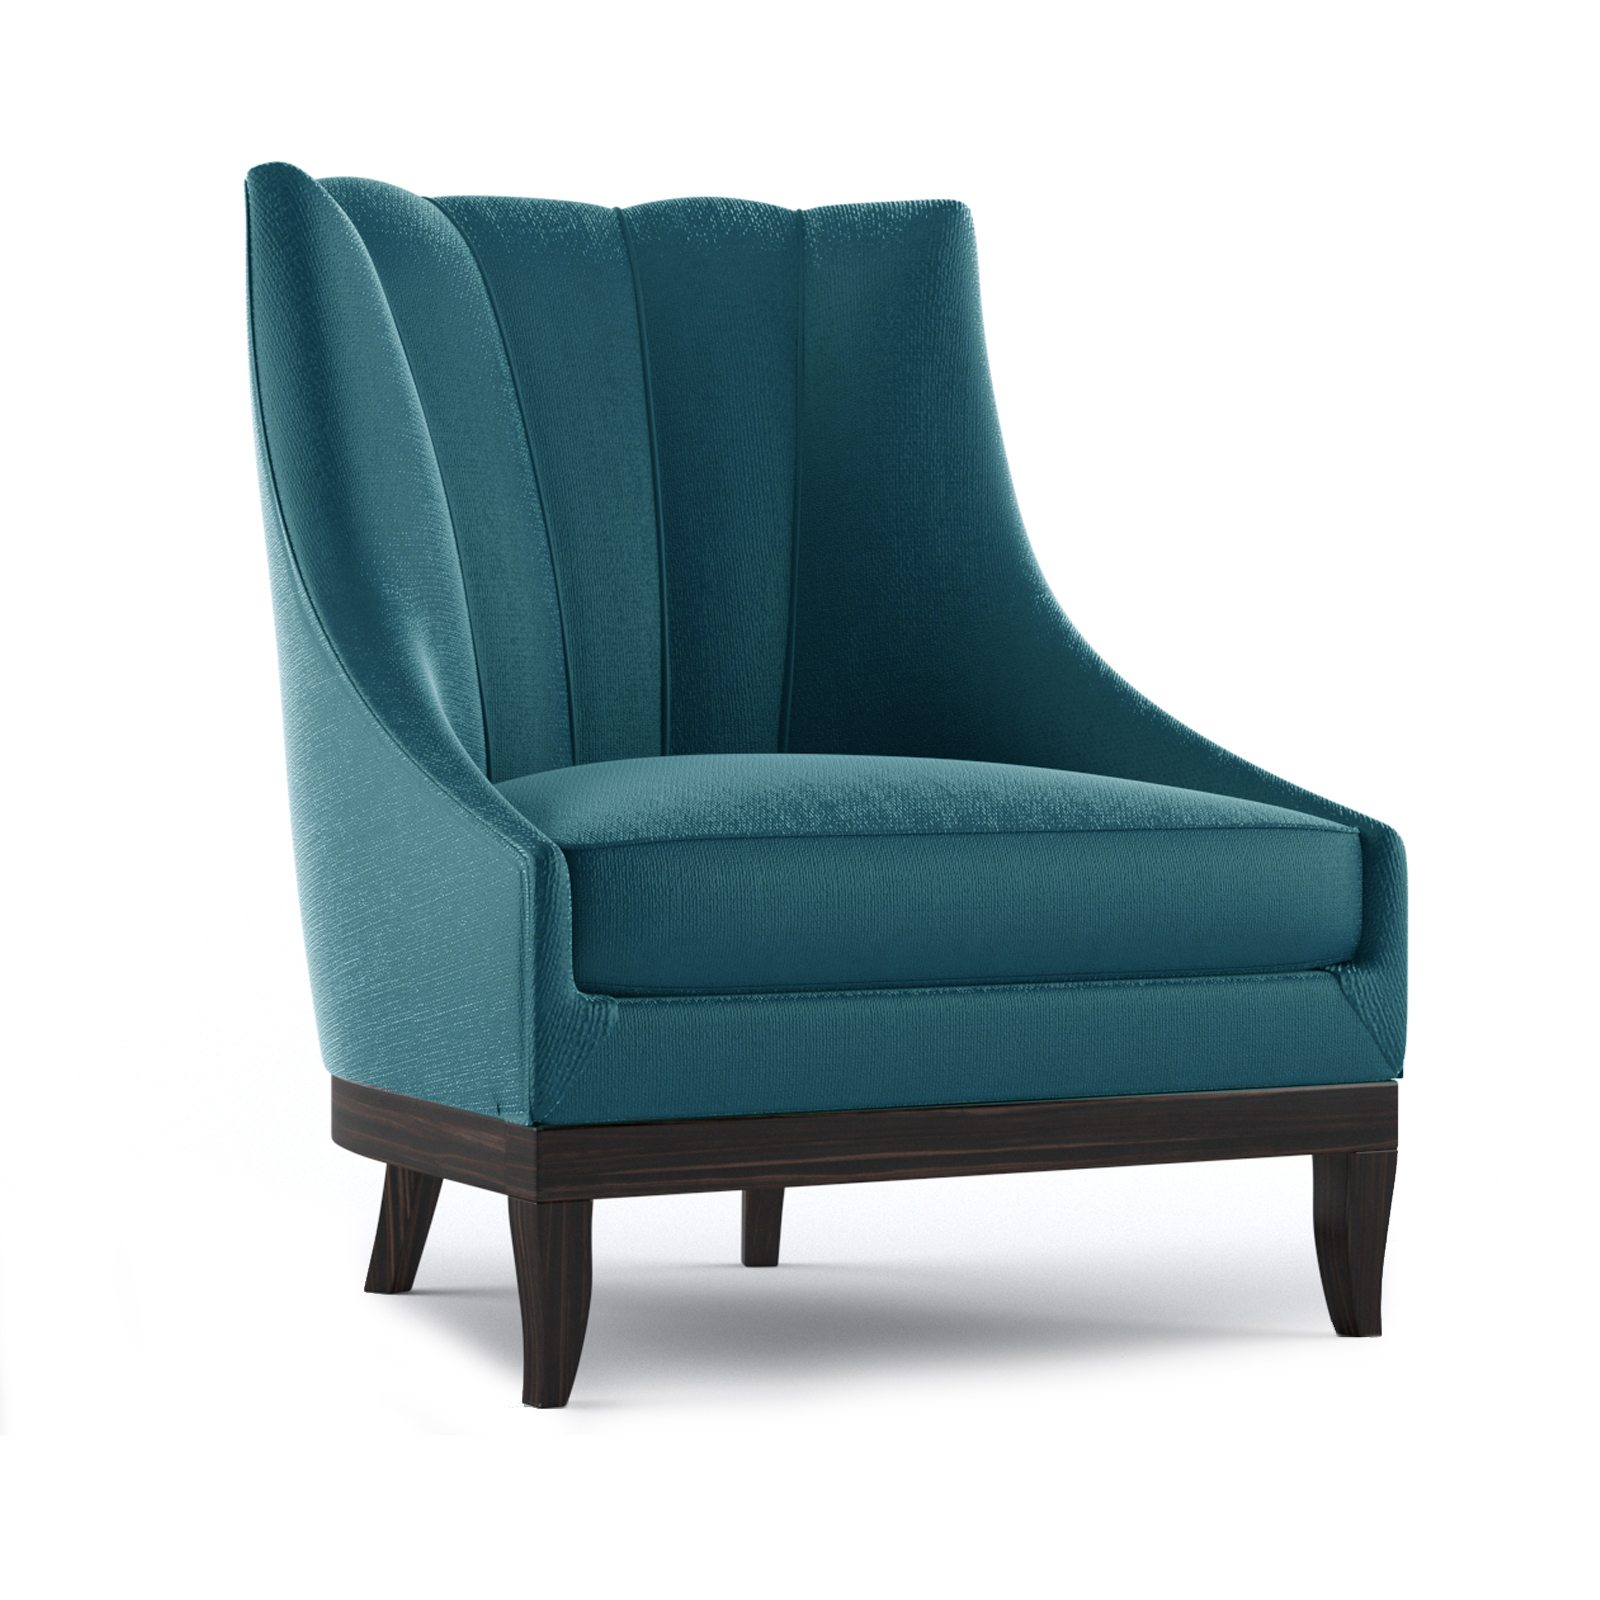 Luxury Lounge Chairs Armchairs  Raleigh Lounge Chair